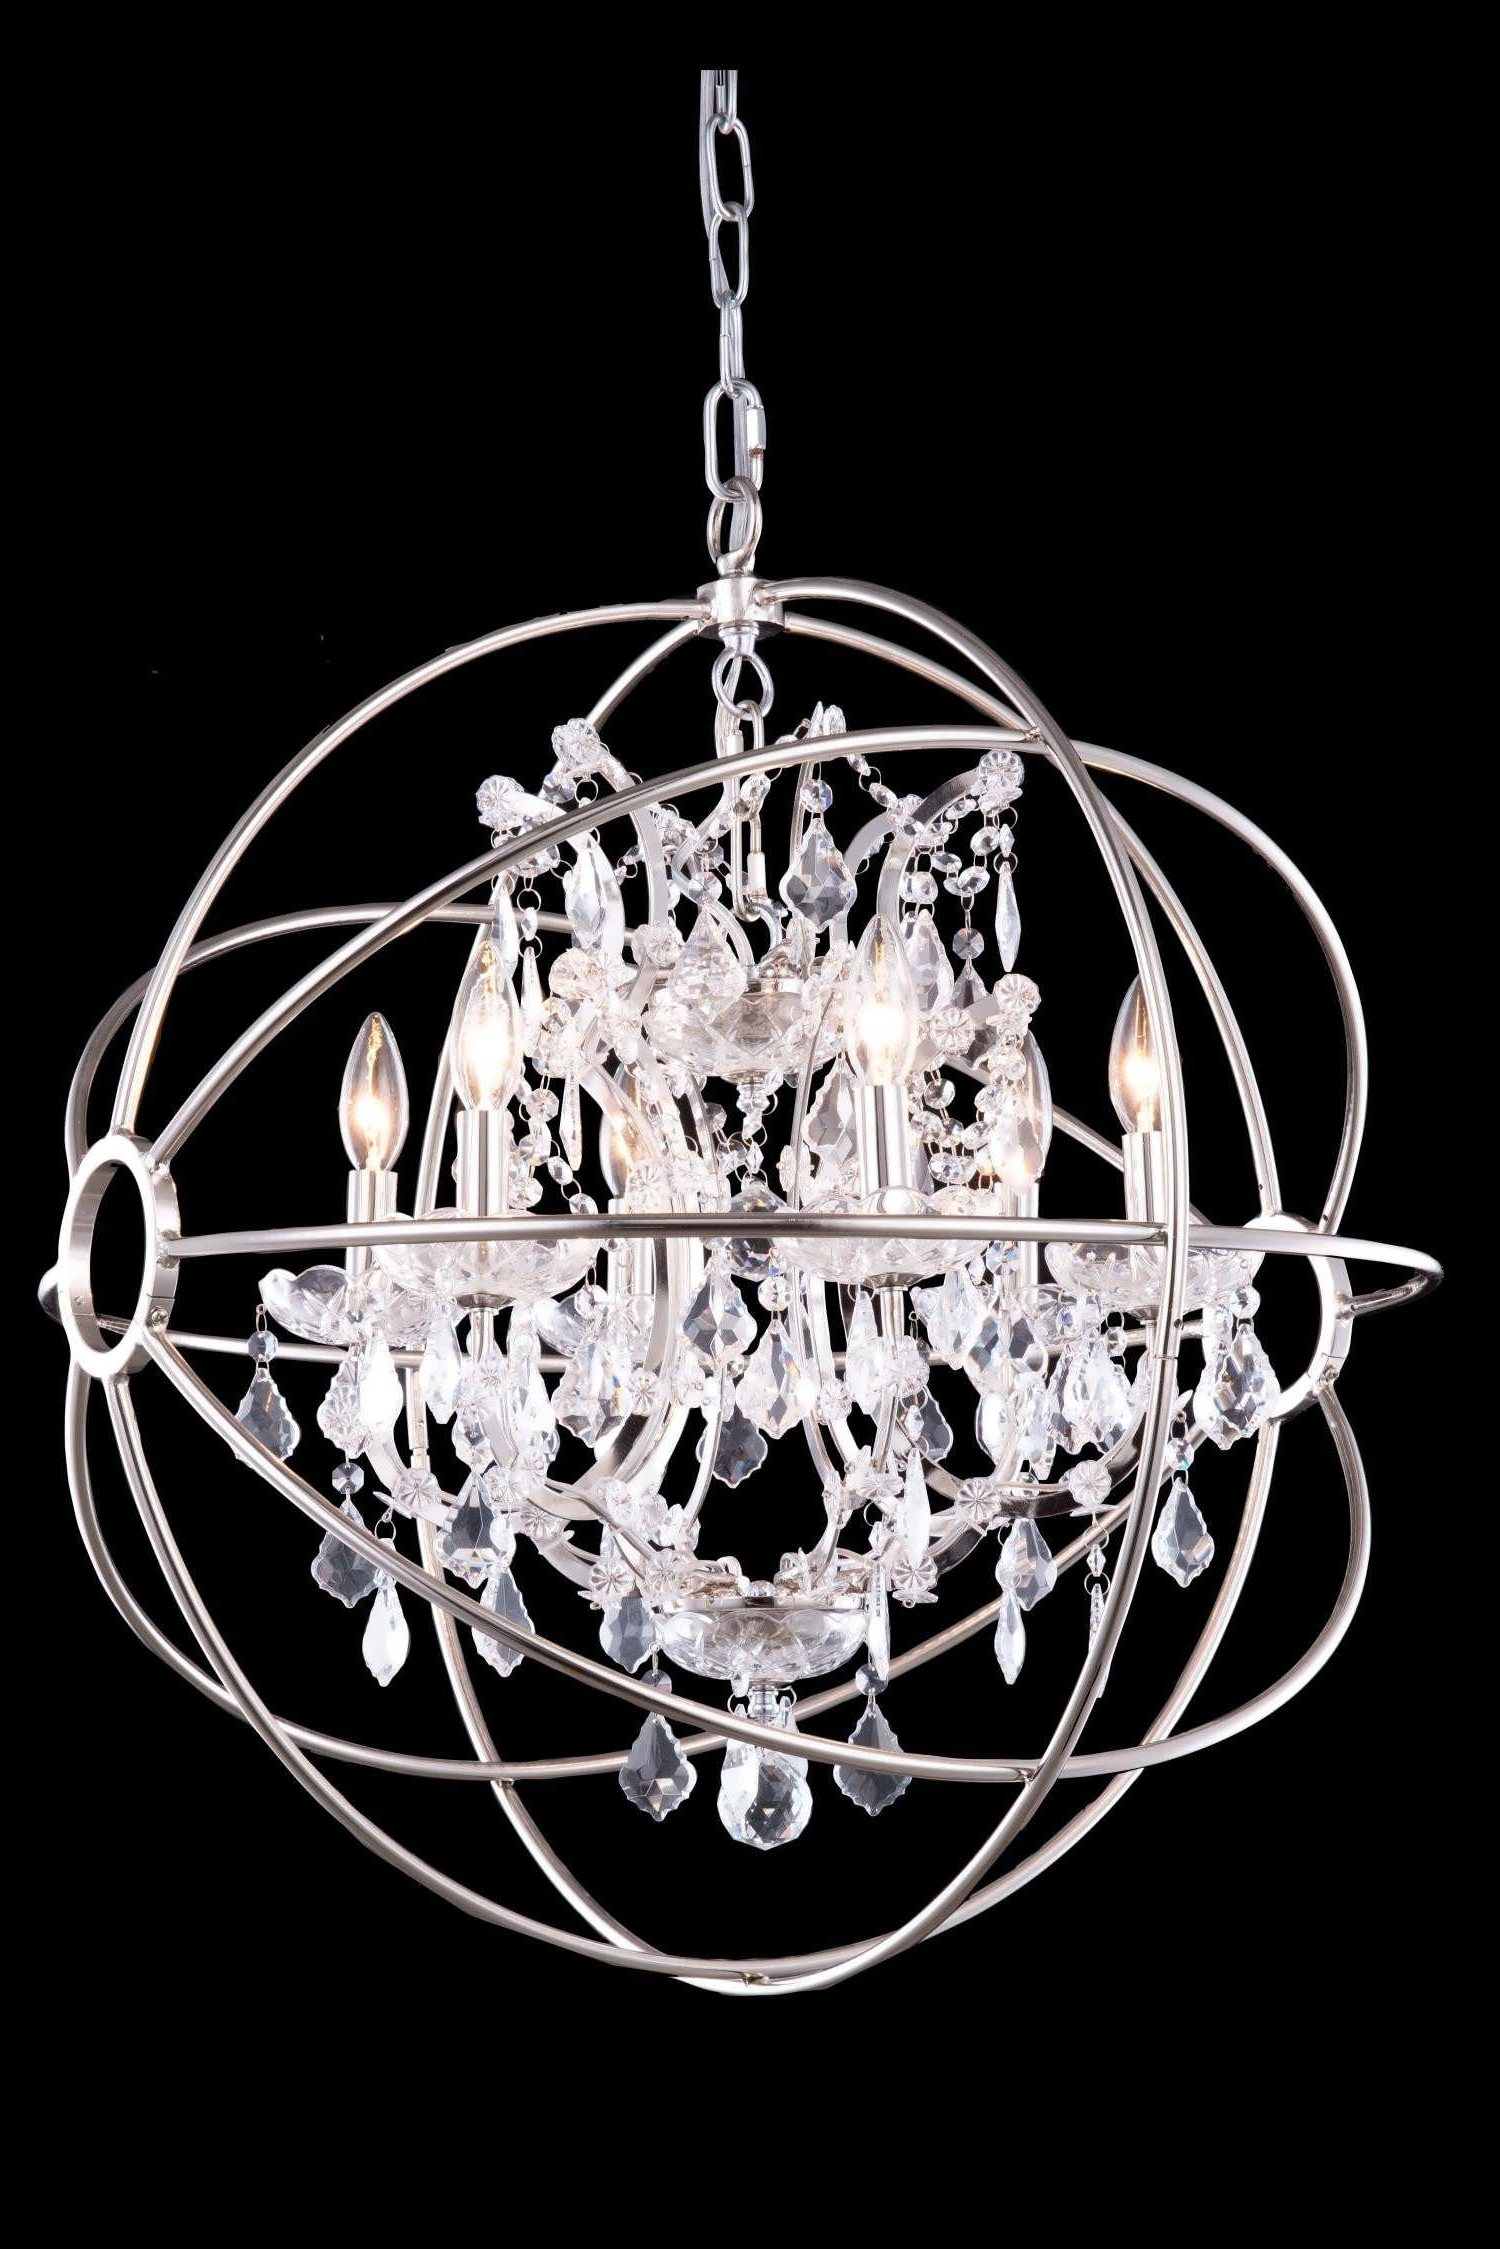 Chandeliers Design : Magnificent Beautiful Metal Ball Candle Intended For 2017 Metal Ball Candle Chandeliers (View 4 of 15)